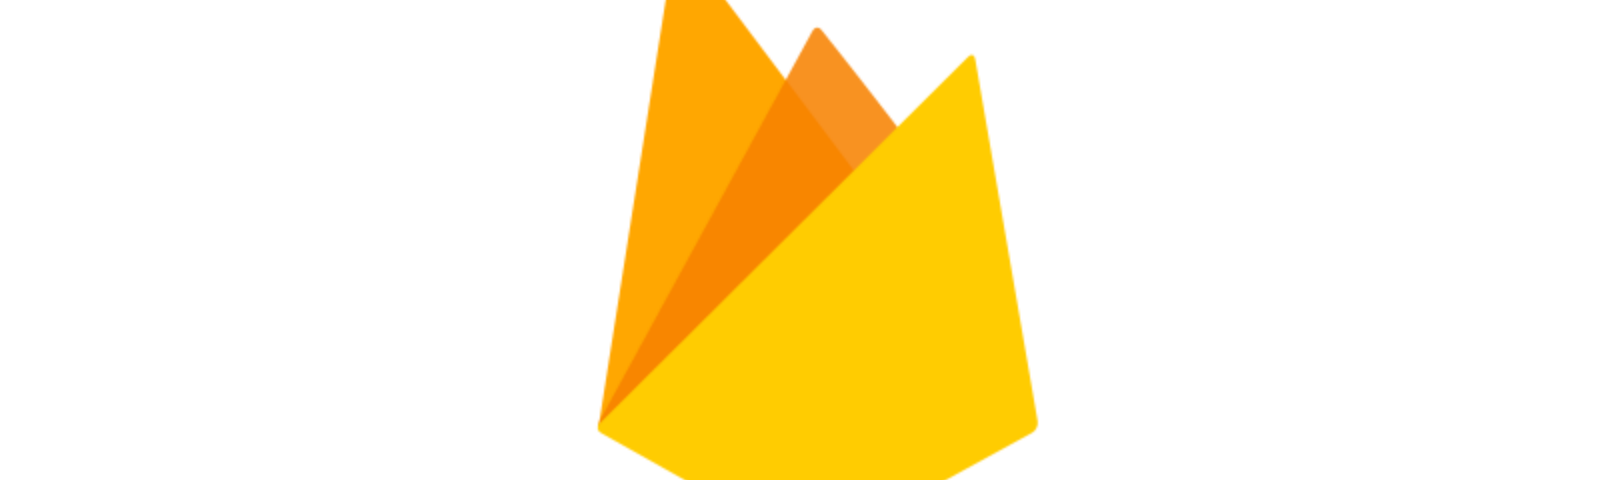 How to build a real-time chatroom with Firebase and React (Hooks)